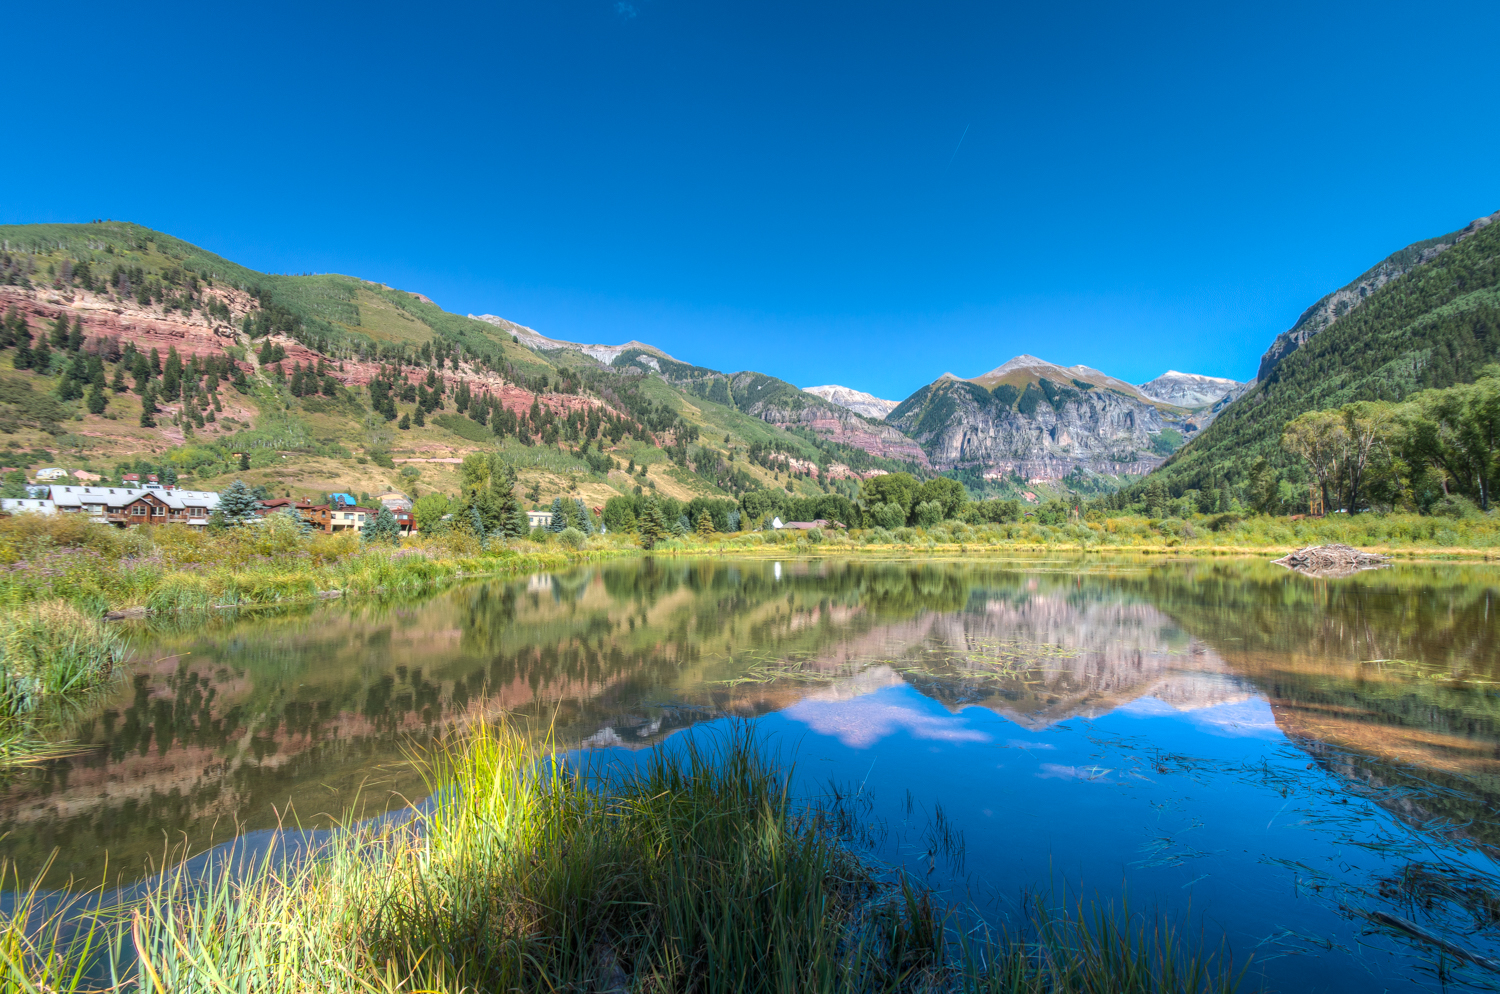 Beaver Pond view of mountain landscape with grass